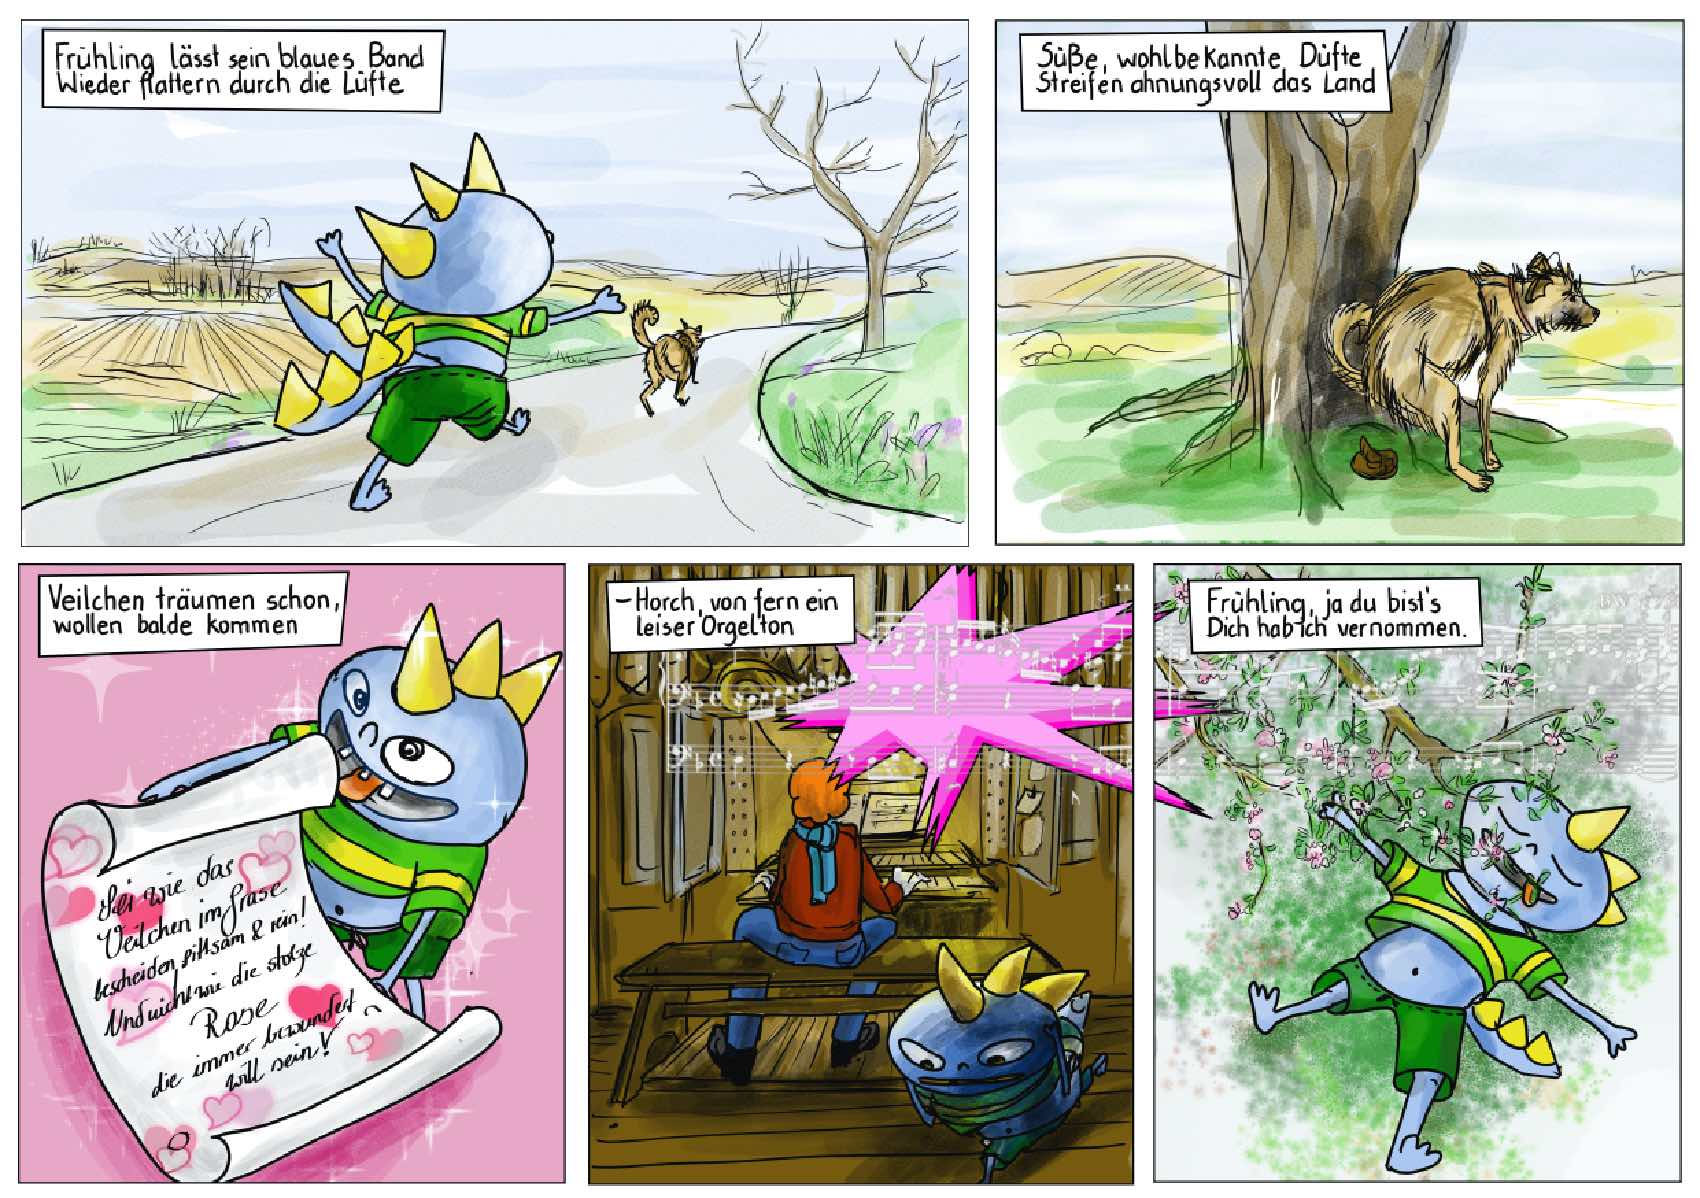 Frühlingsgedicht Mörike Illustration comic